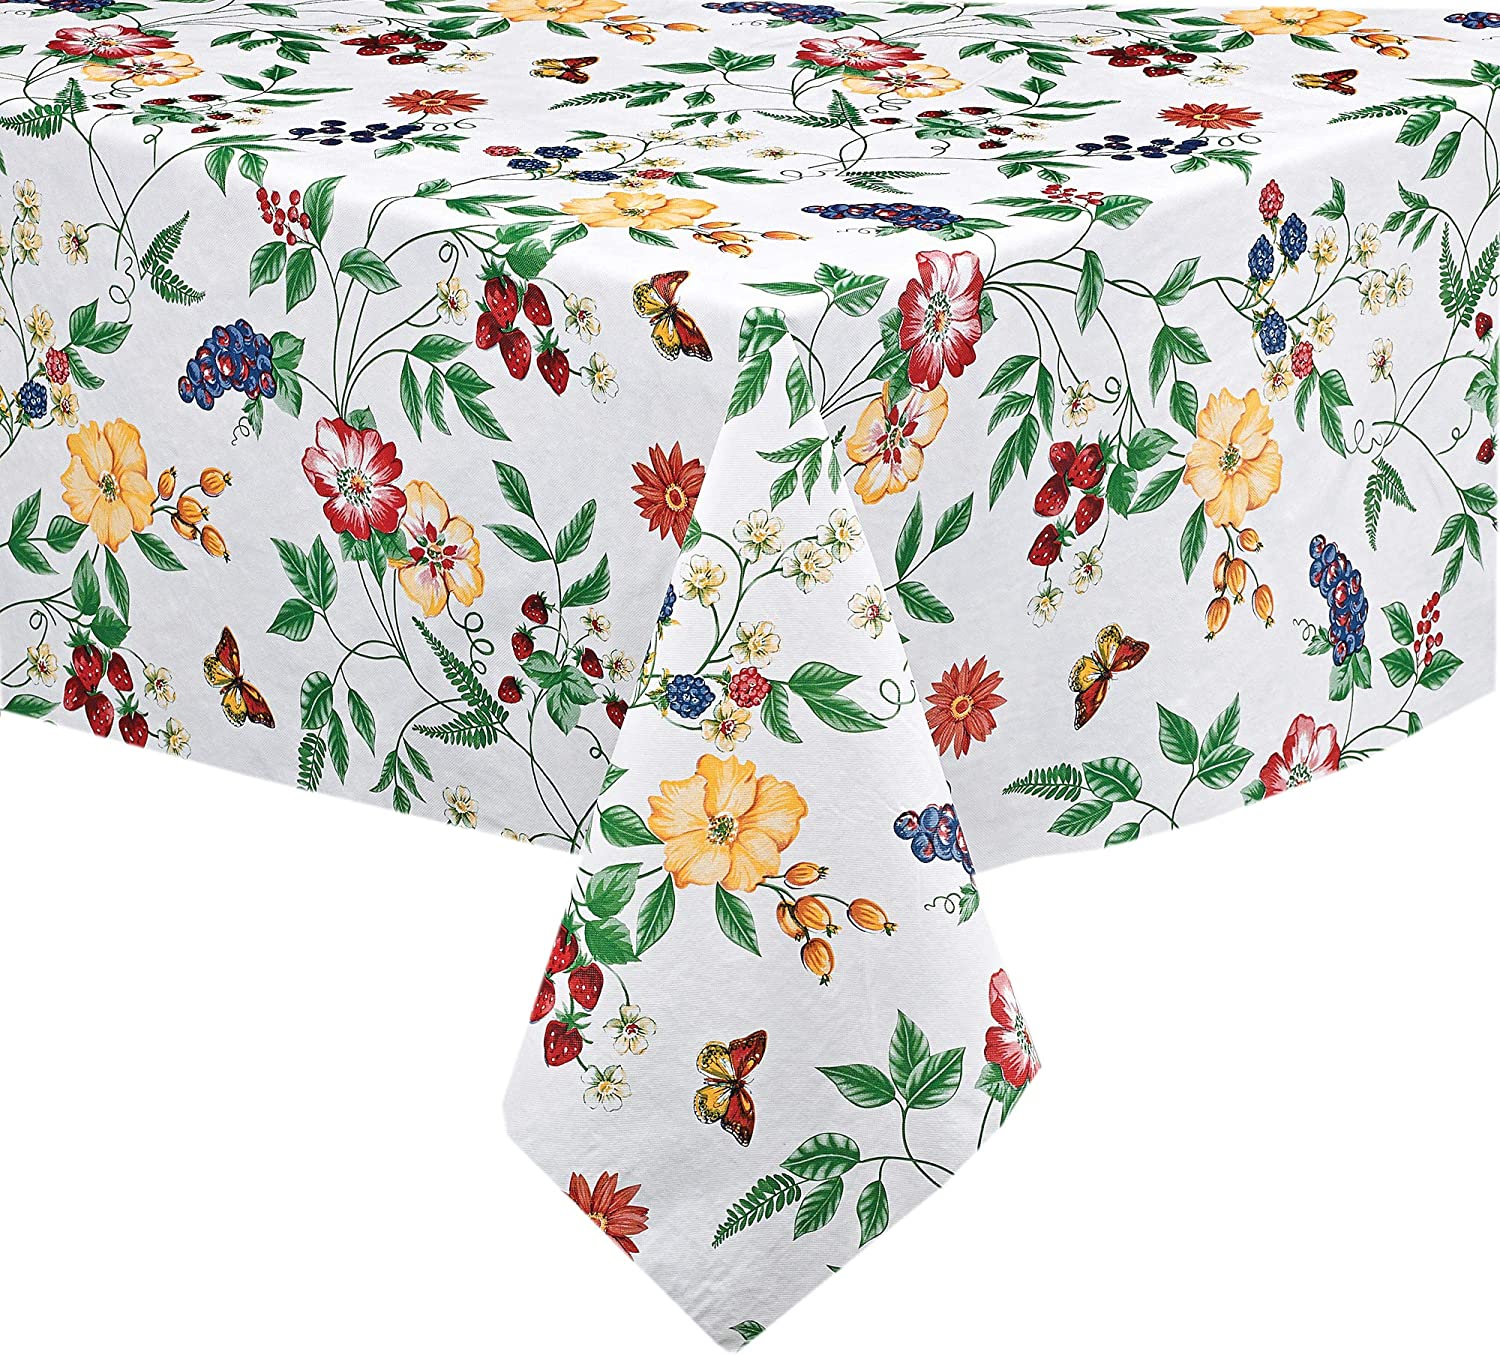 """English Berry Garden Heavy 4 Gauge Vinyl Flannel Backed Tablecloth, Strawberry Garden Floral Indoor/Outdoor Wipe Clean Picnic, Kitchen, Dining Room Tablecloth - 52"""" x 70"""" Oblong/Rectangle"""